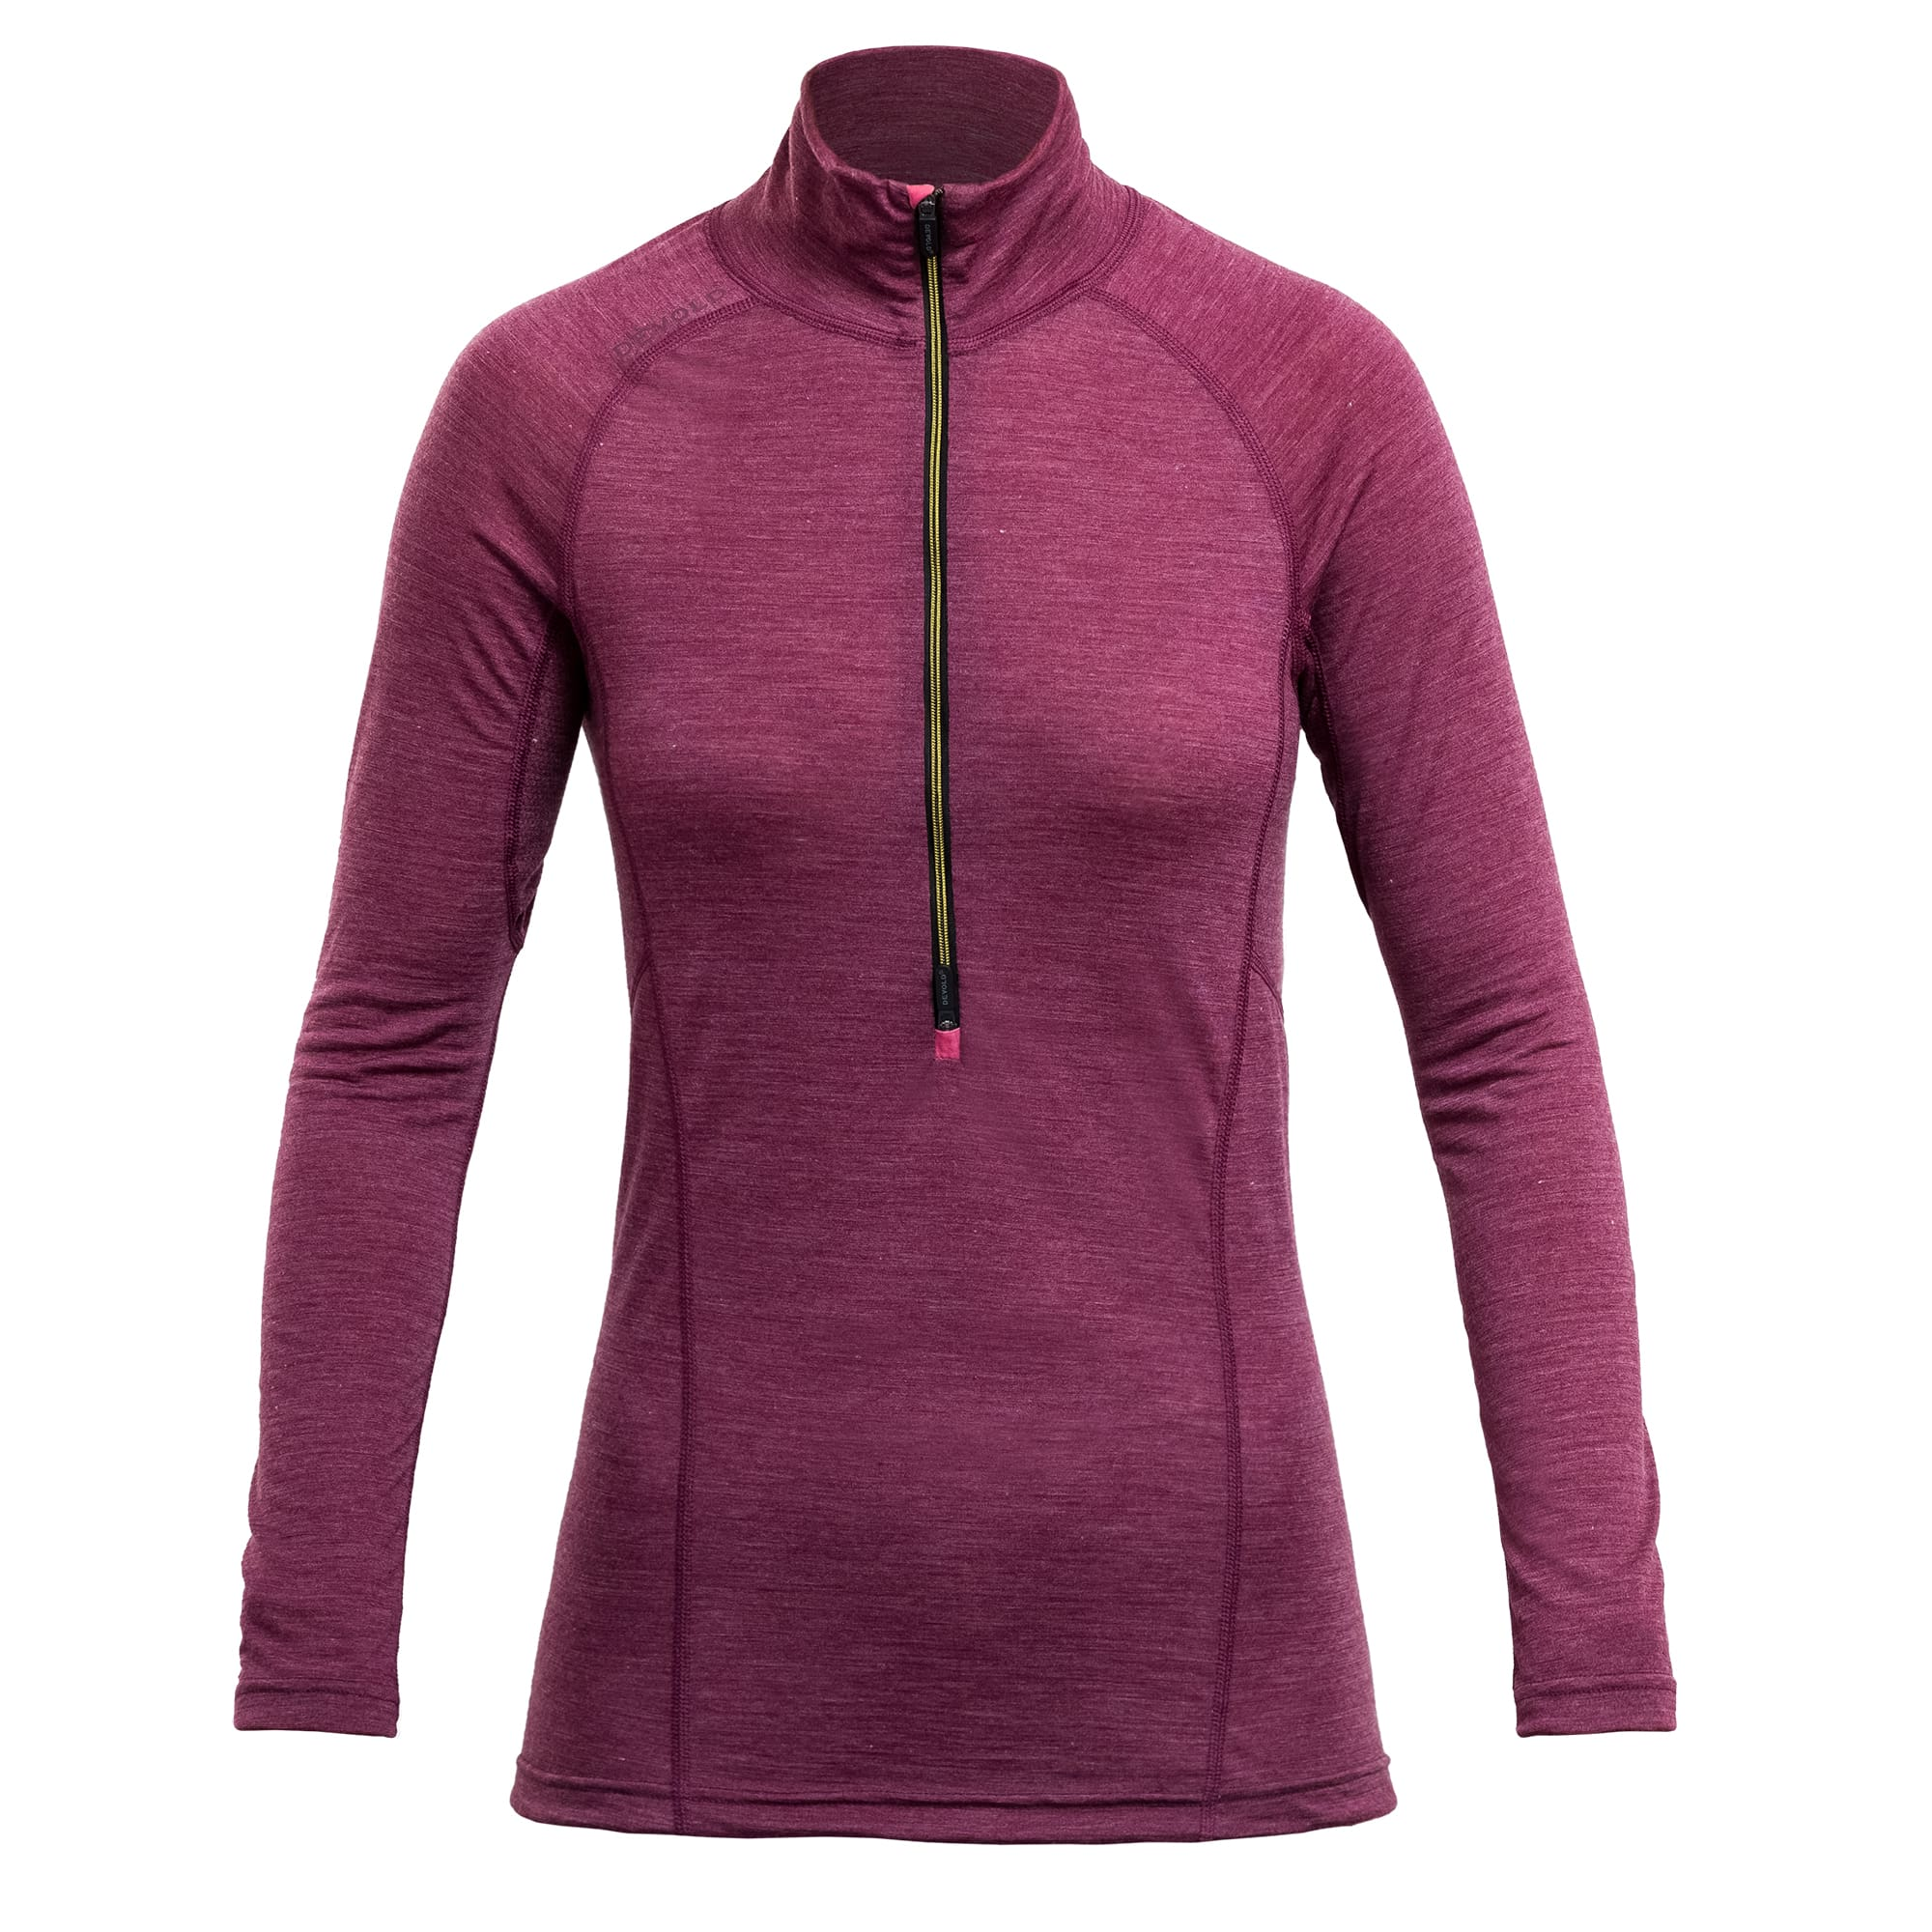 Running Woman Zip Neck, Devold